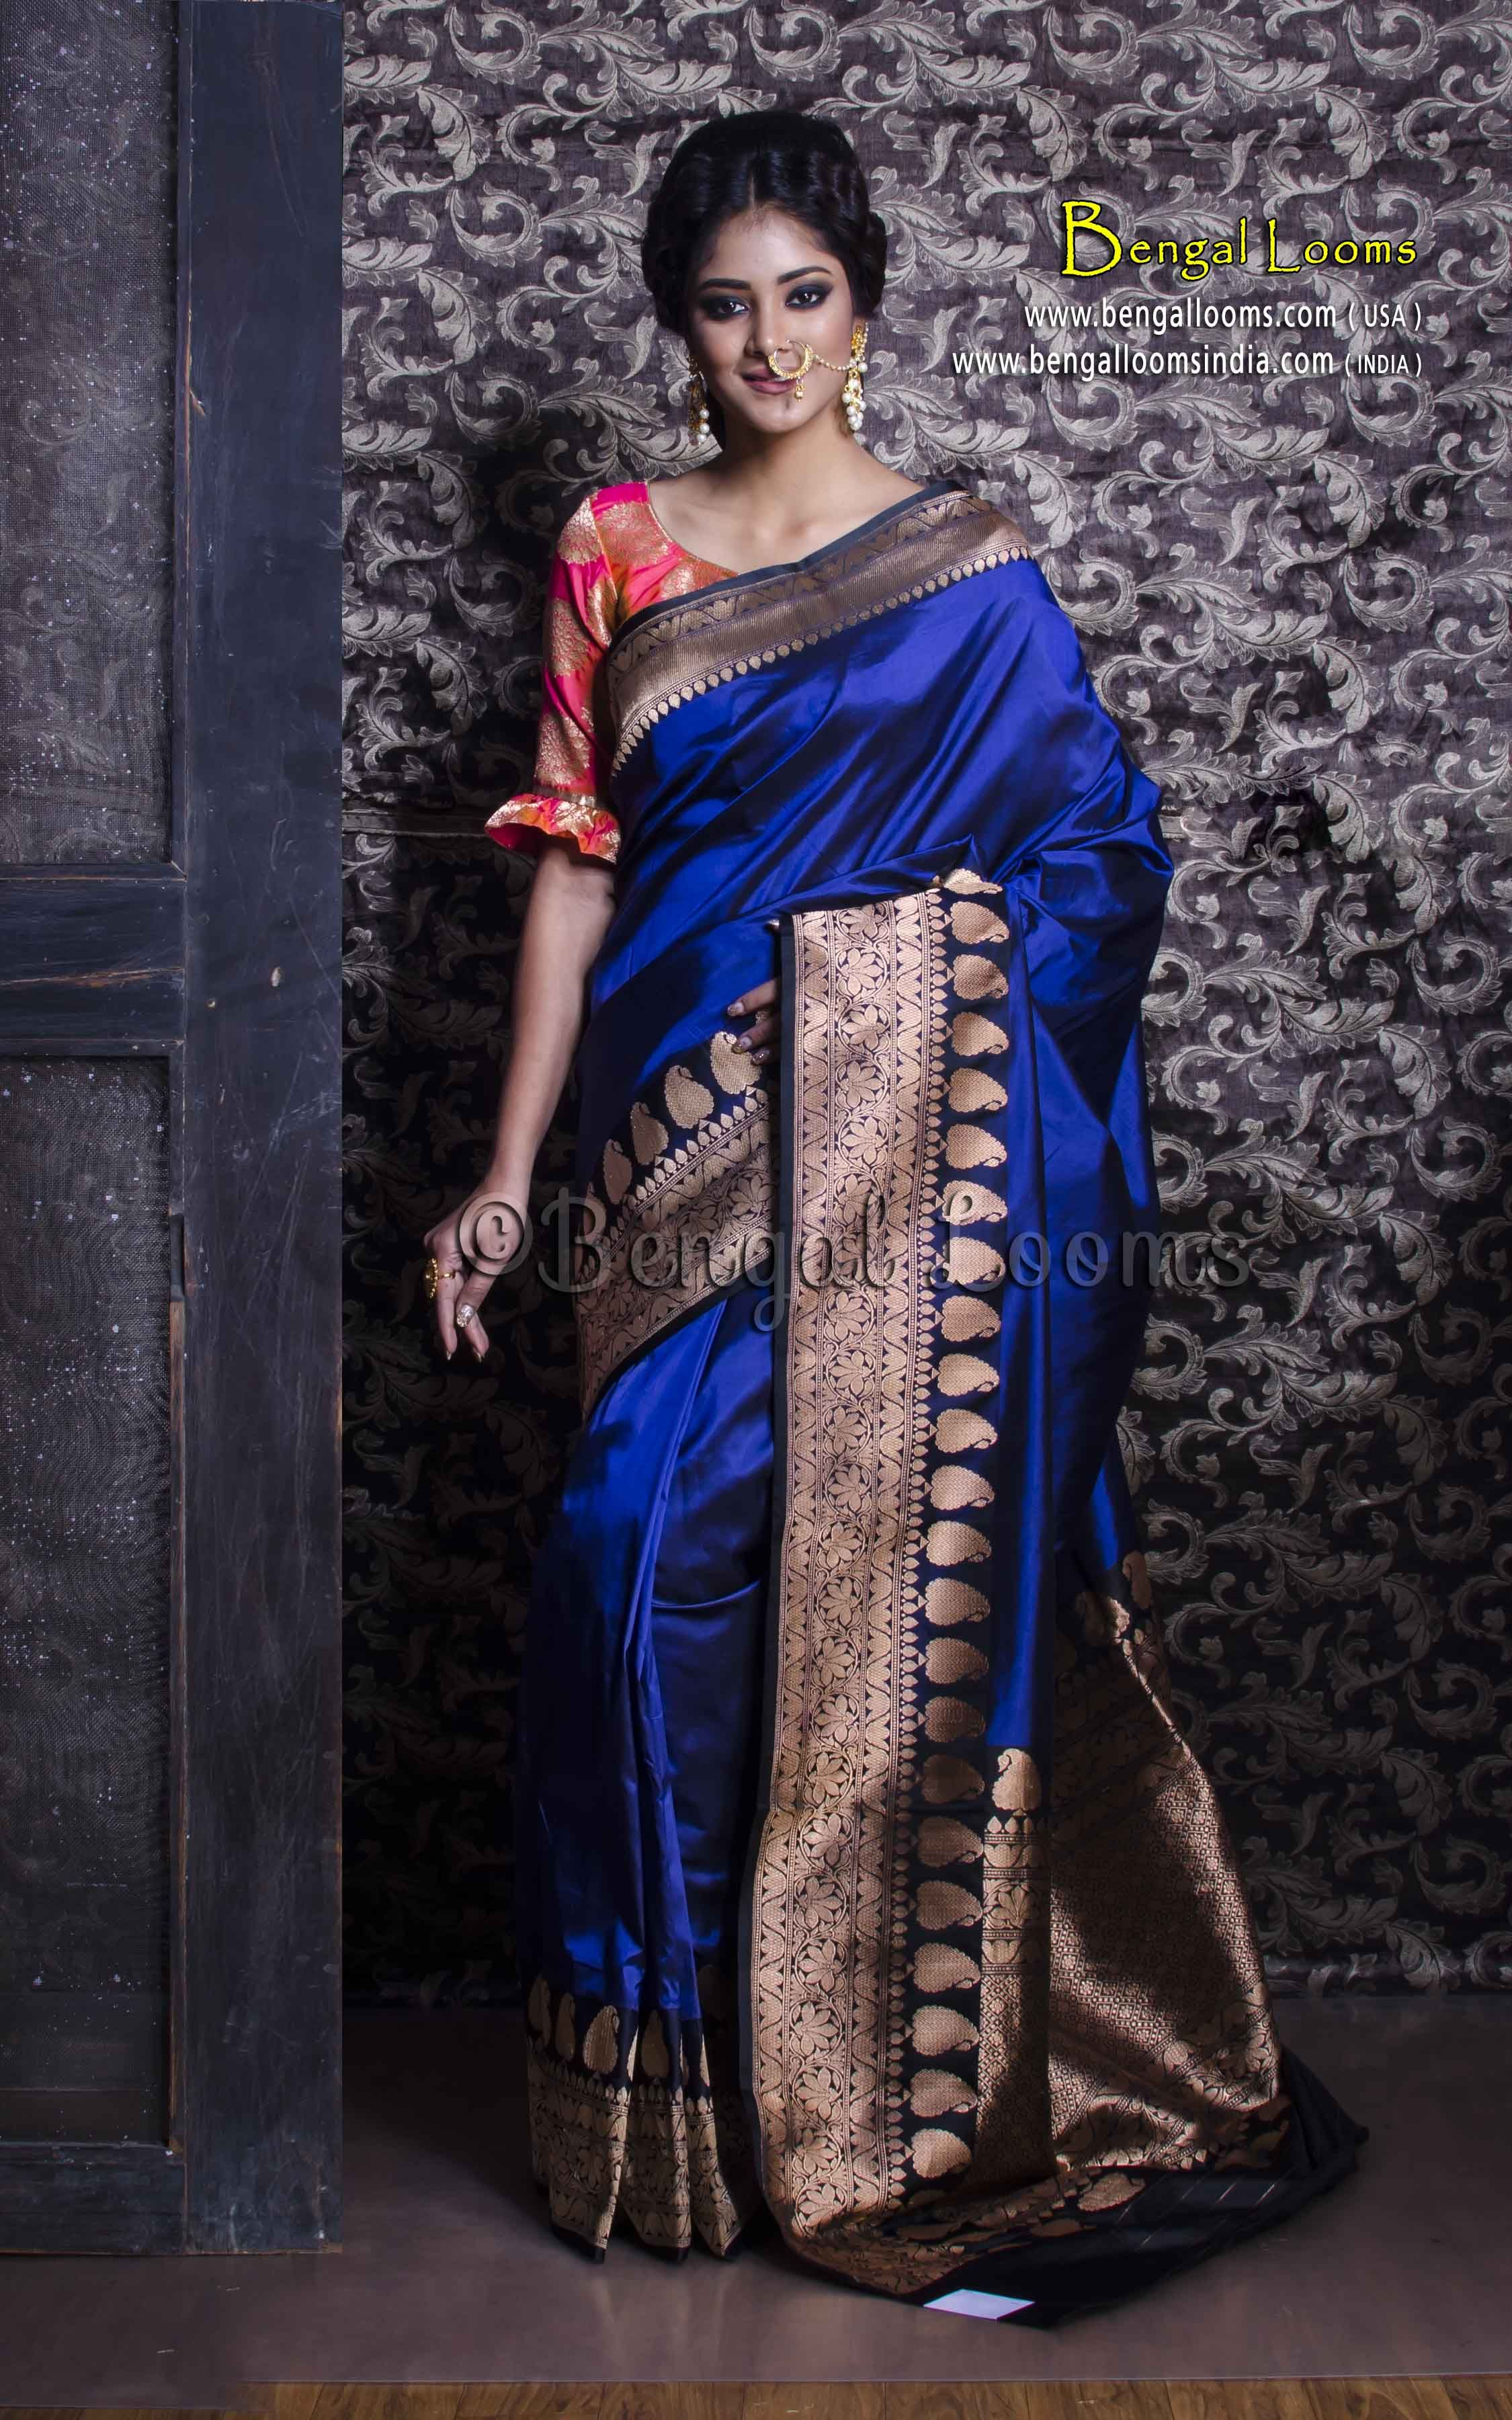 Modern half saree blouse designs pure handloom katan silk banarasi saree in royal blue and black